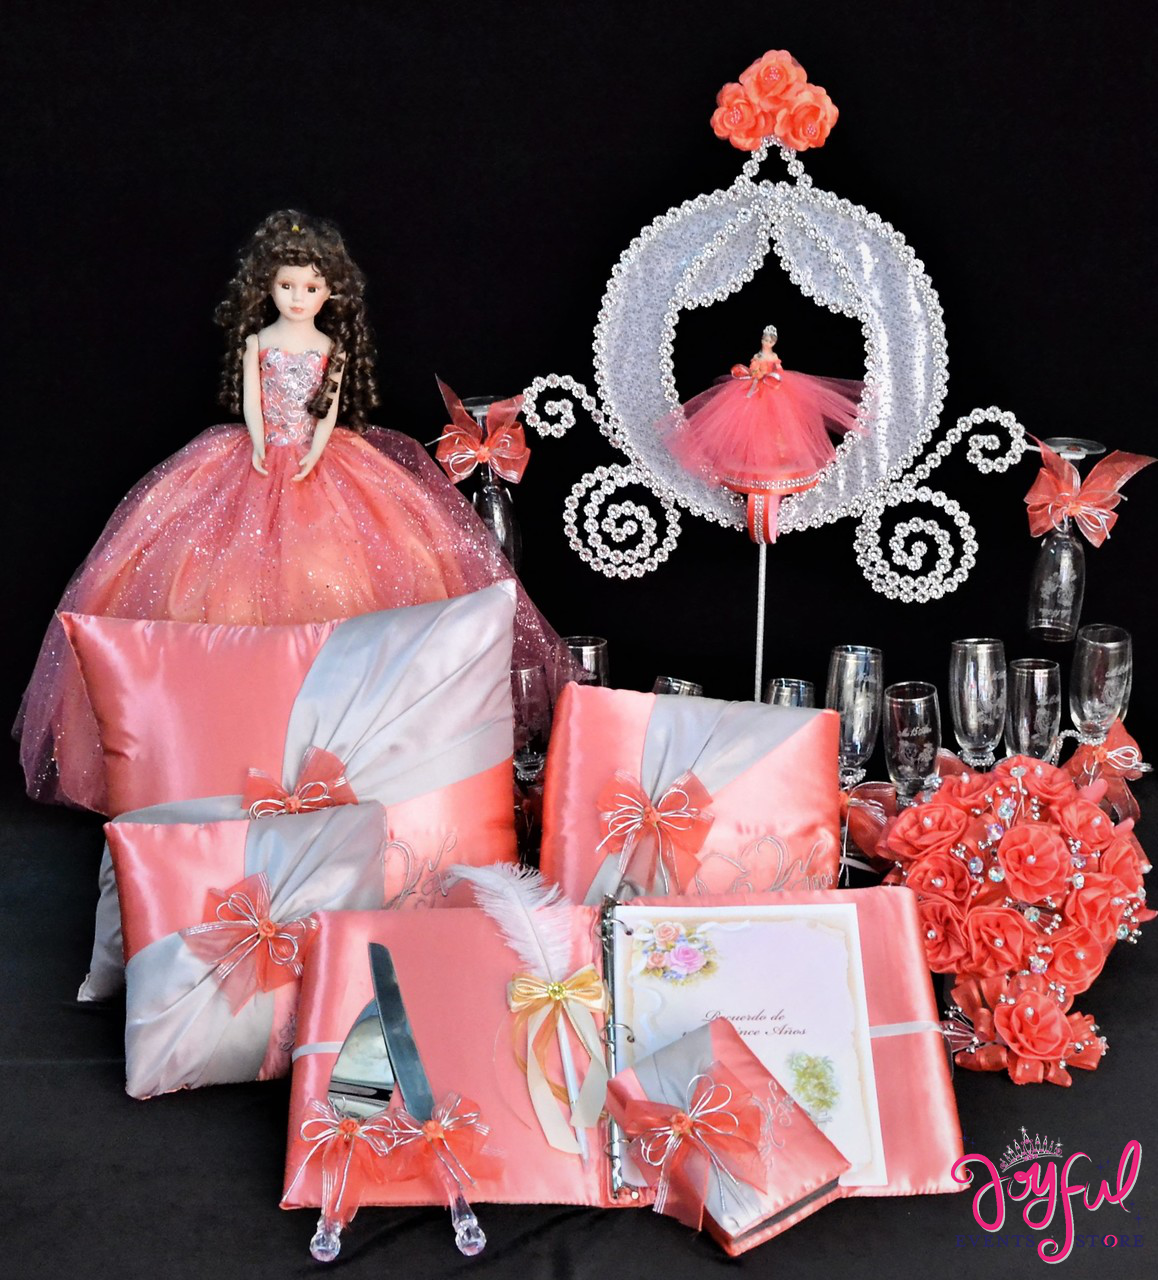 Cinderella Theme Accessories Quinceanera Package Toasting Set Doll Pillows Guest Book Album Flower Bouquet And Cake Server Qsp159